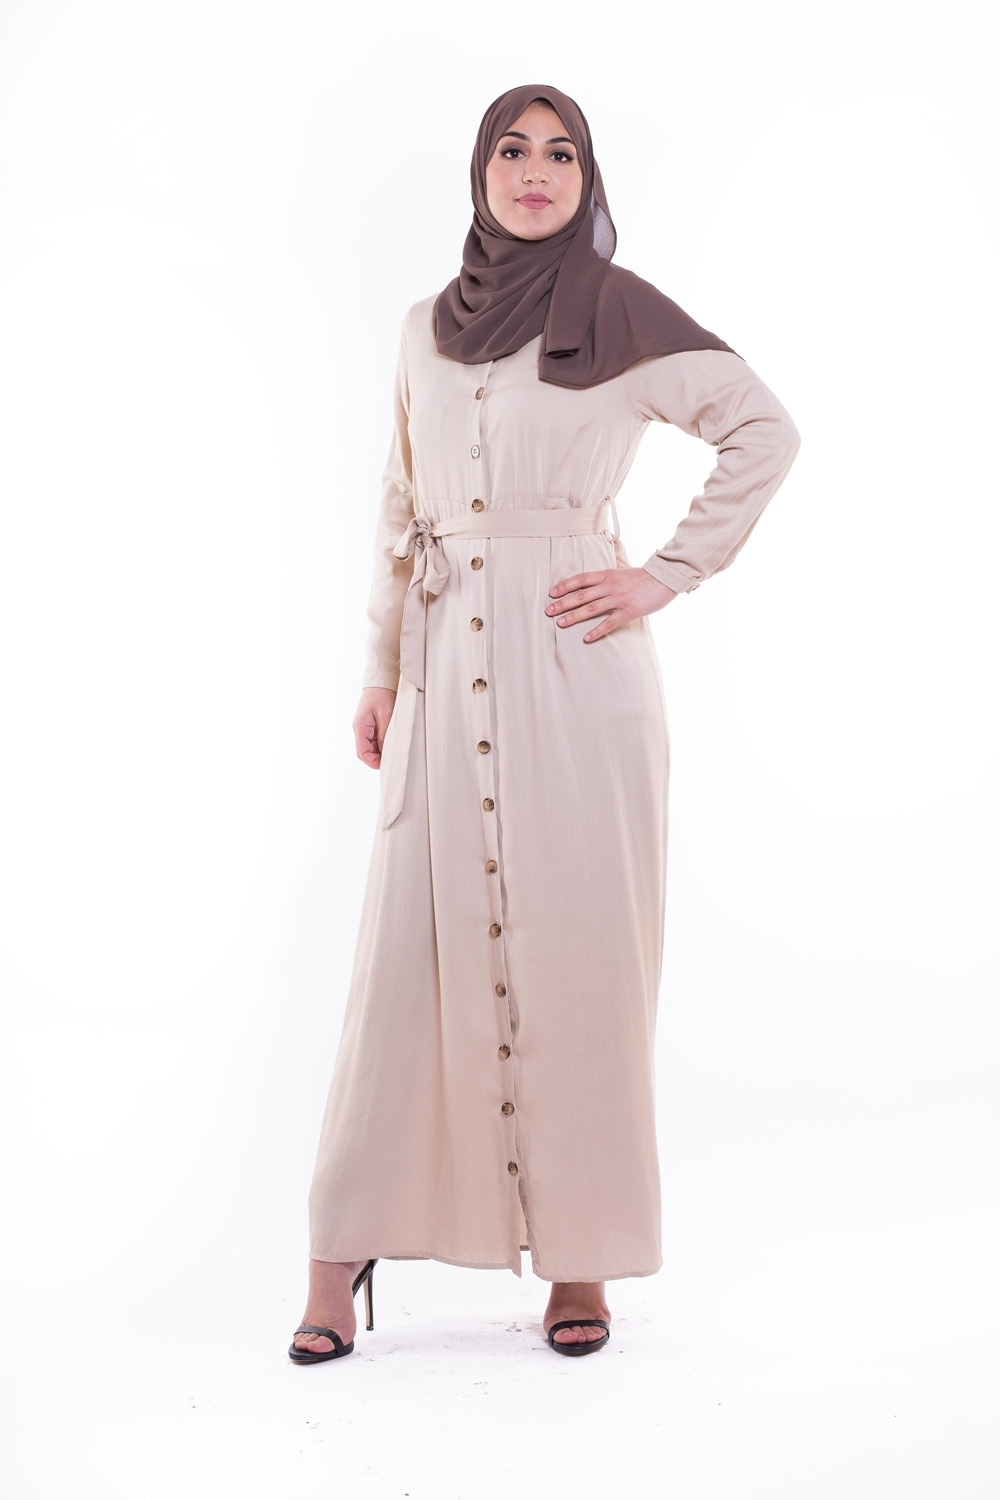 robe hijab longue beige printemps été nouvelle collection 2019 boutique hijab modeste fashion